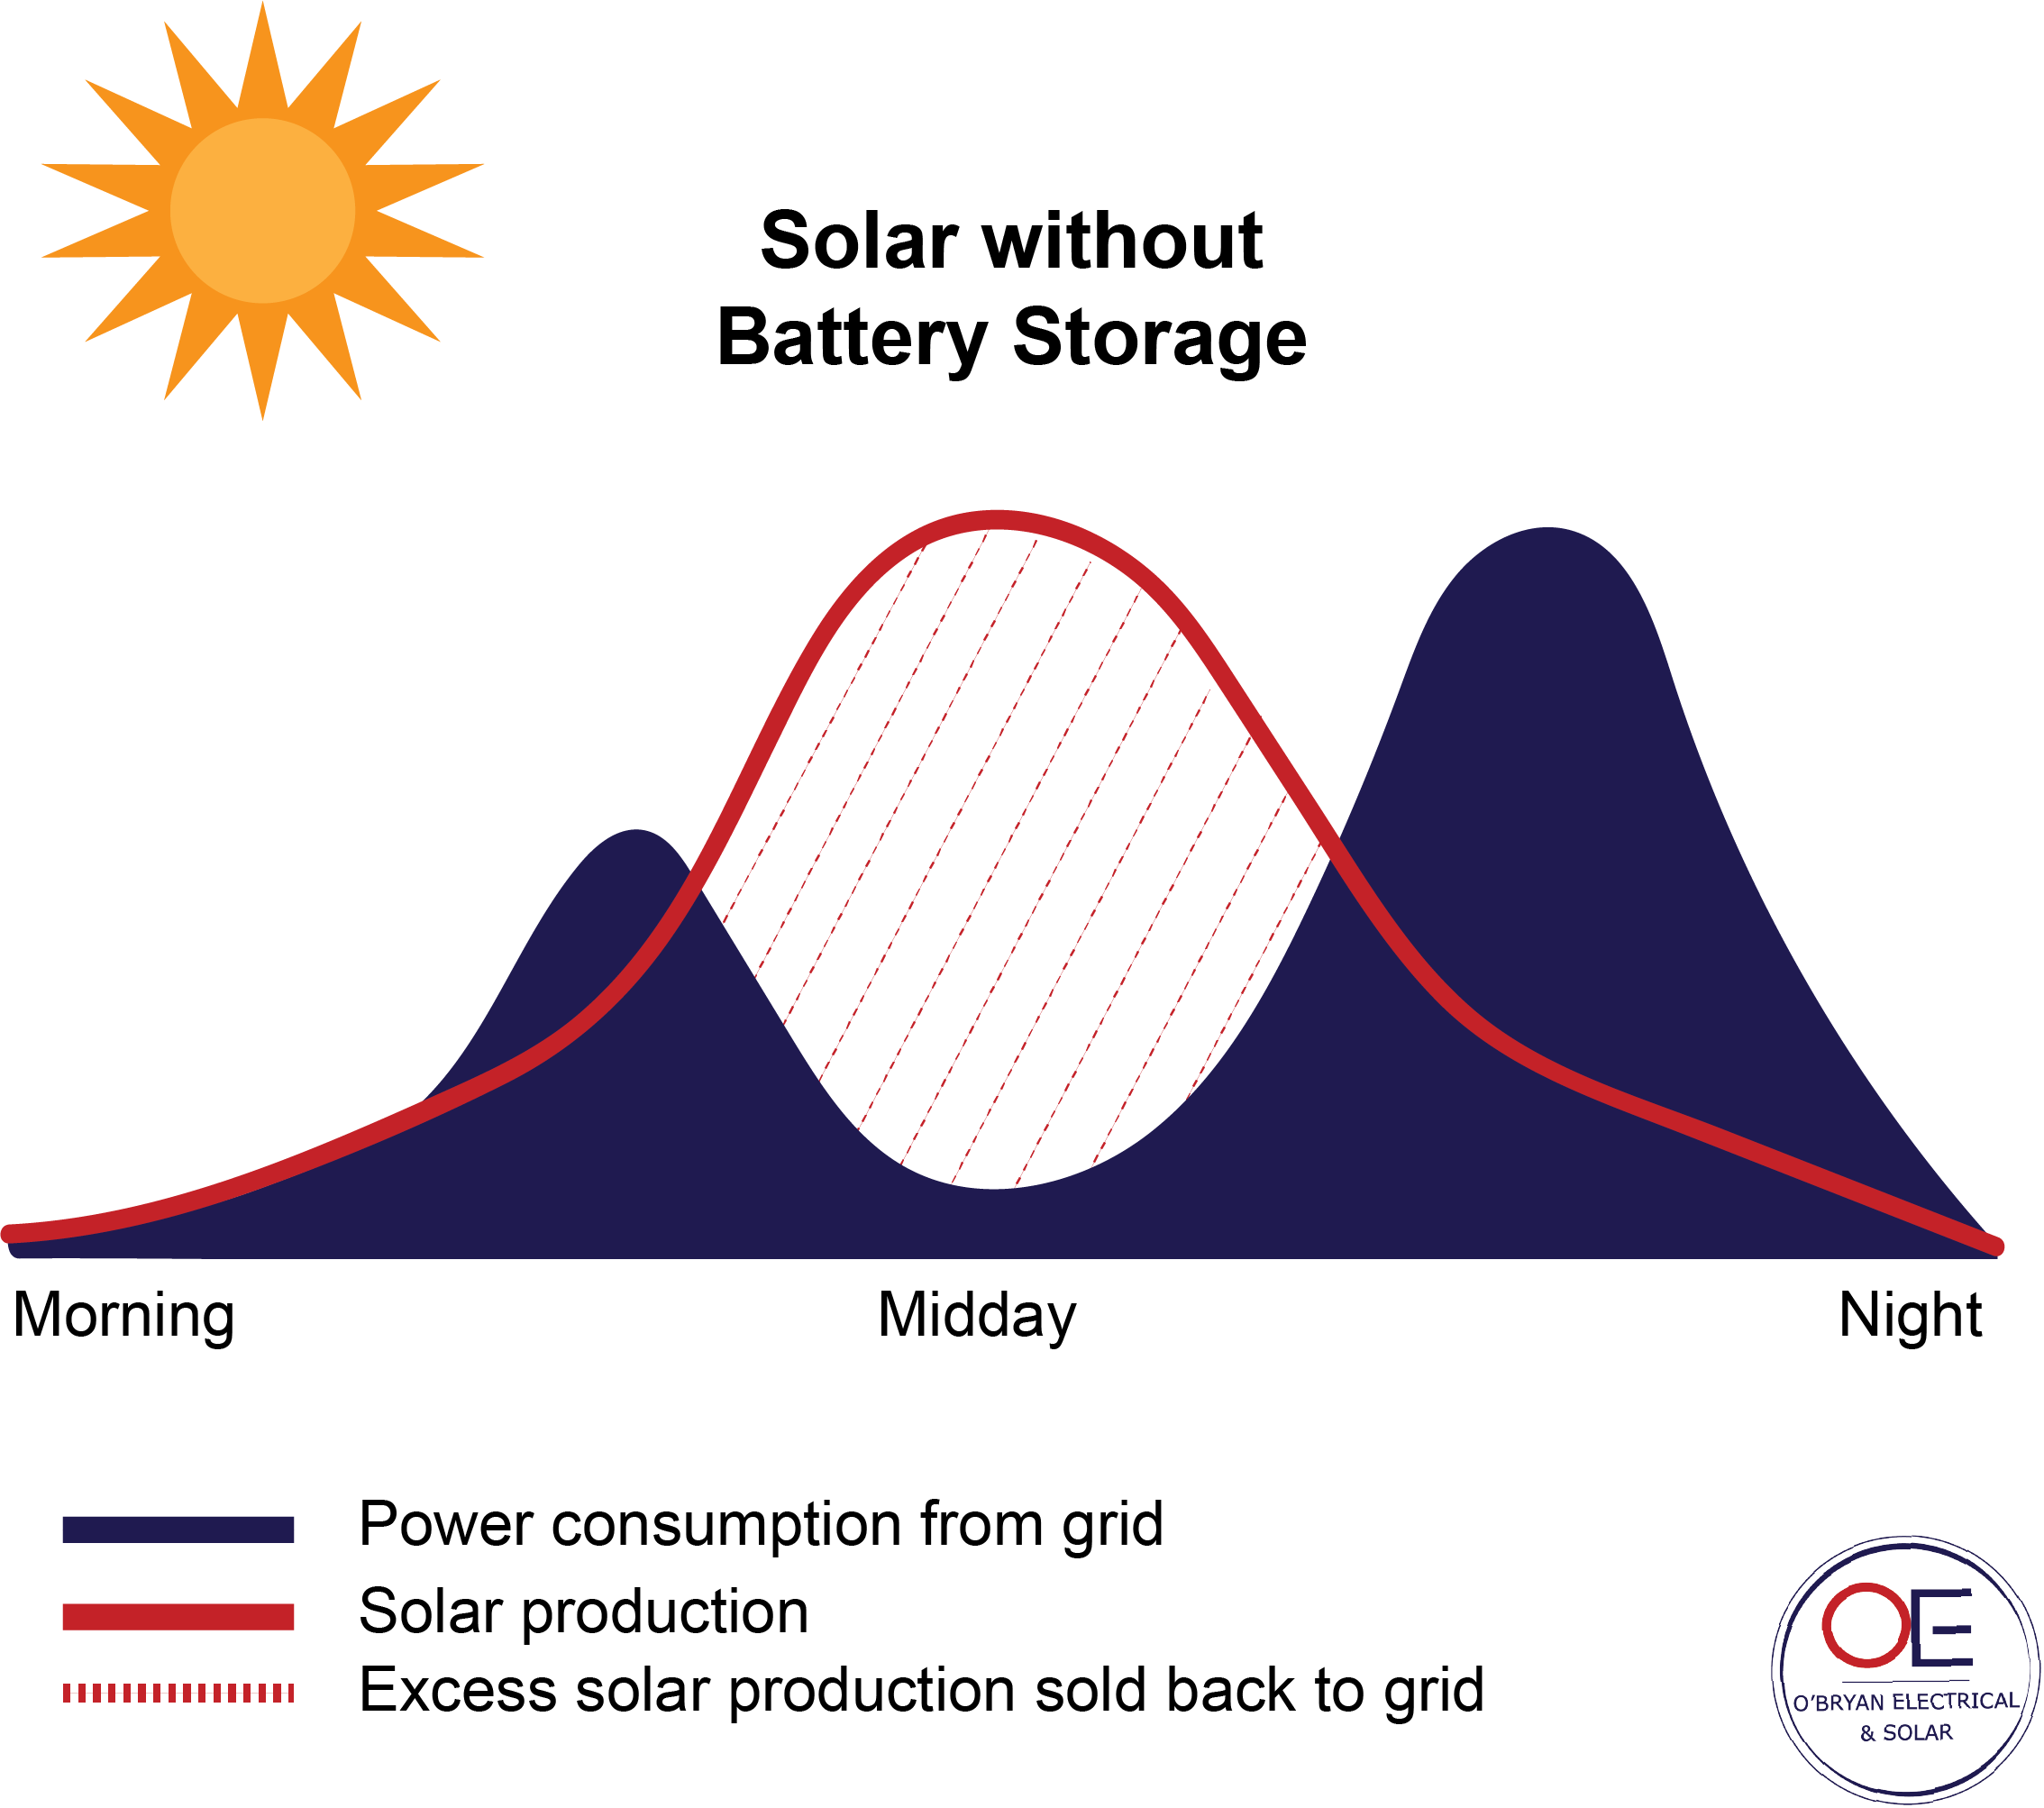 Solar Without Battery Storage